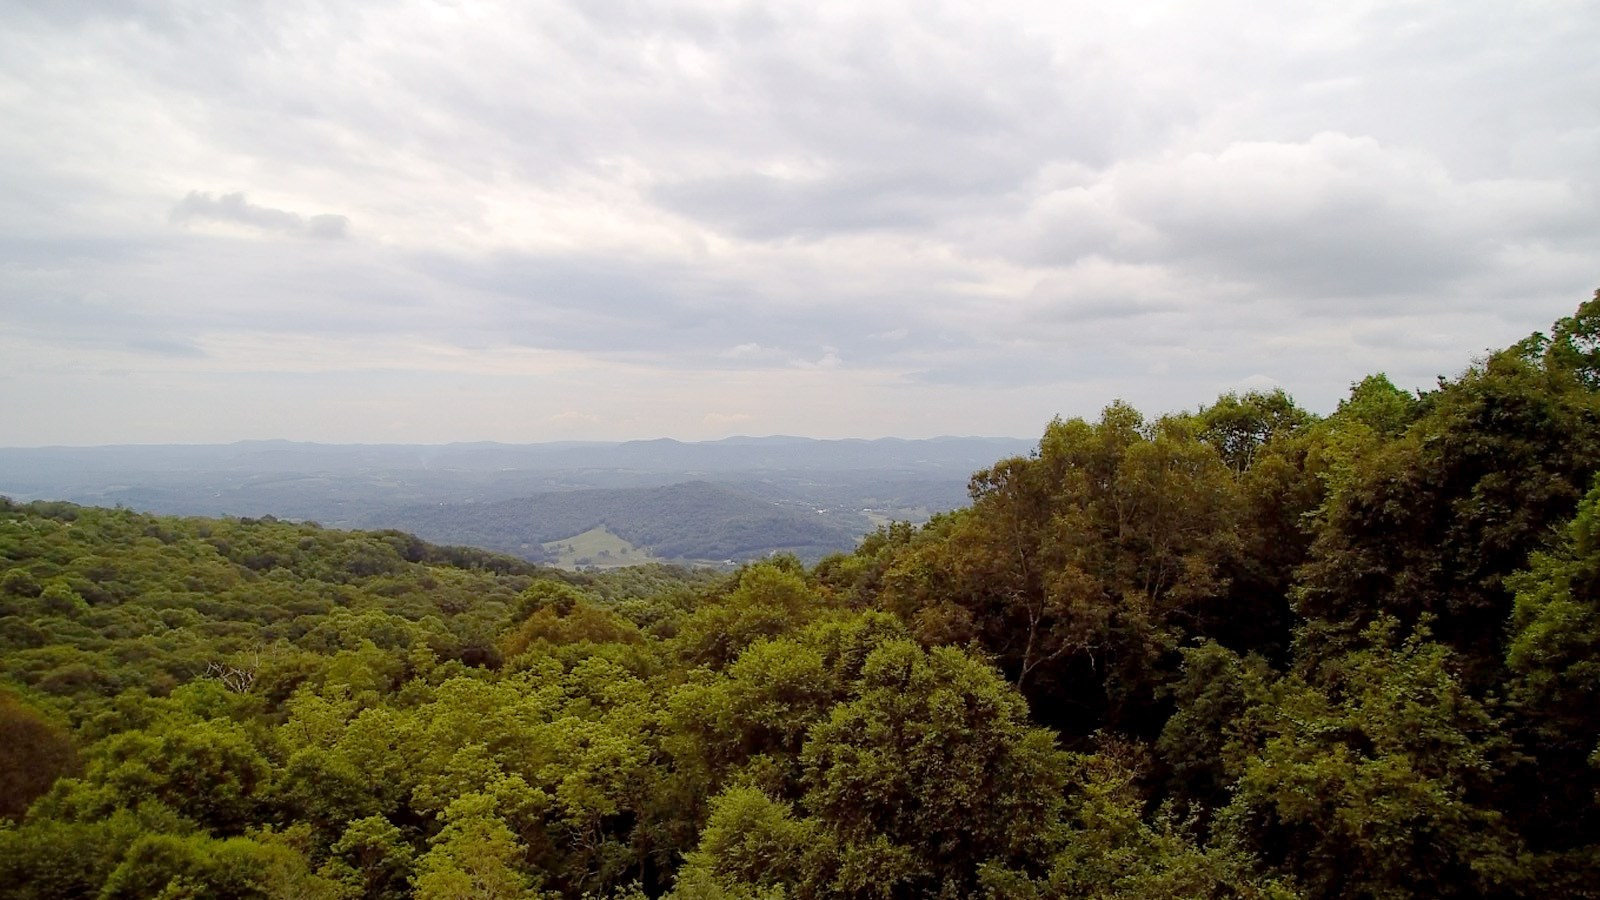 11.668 Acres that Offers Security, Boulders and Views